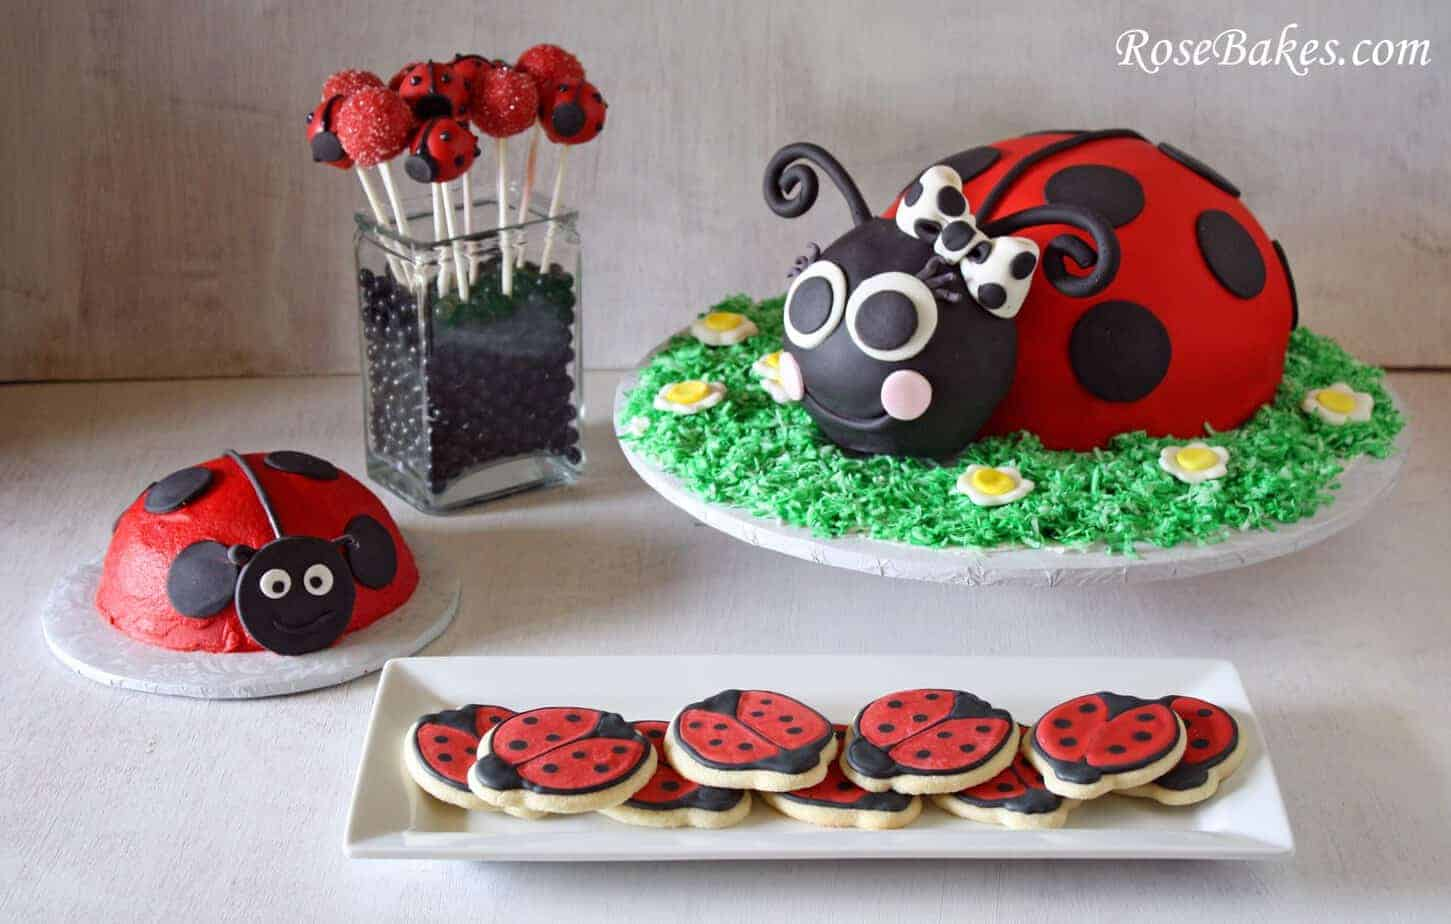 How To Make Ladybug Smash Cake